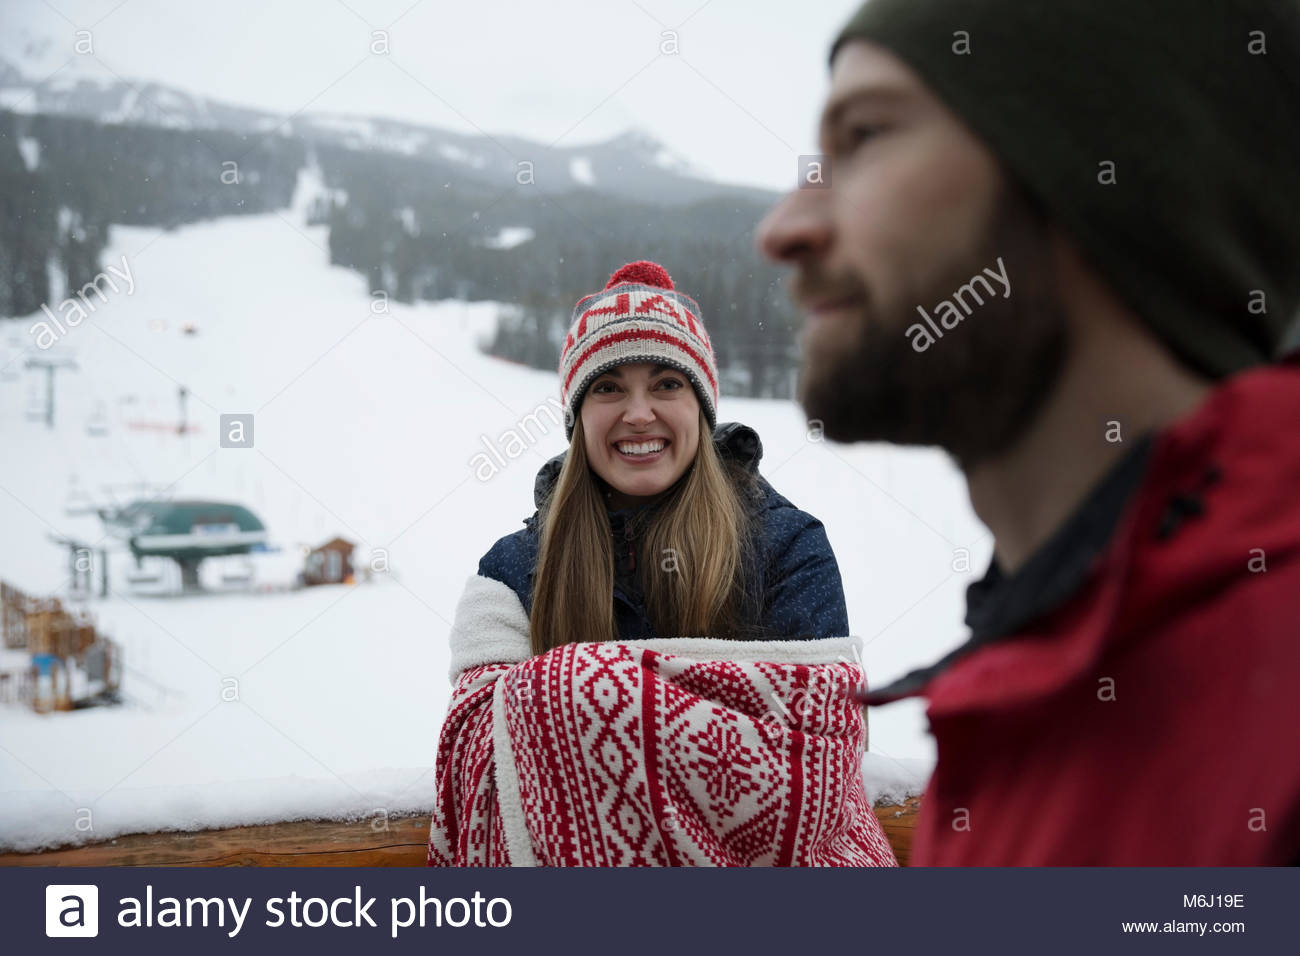 Smiling woman wrapped in a blanket on snowy ski resort balcony - Stock Image